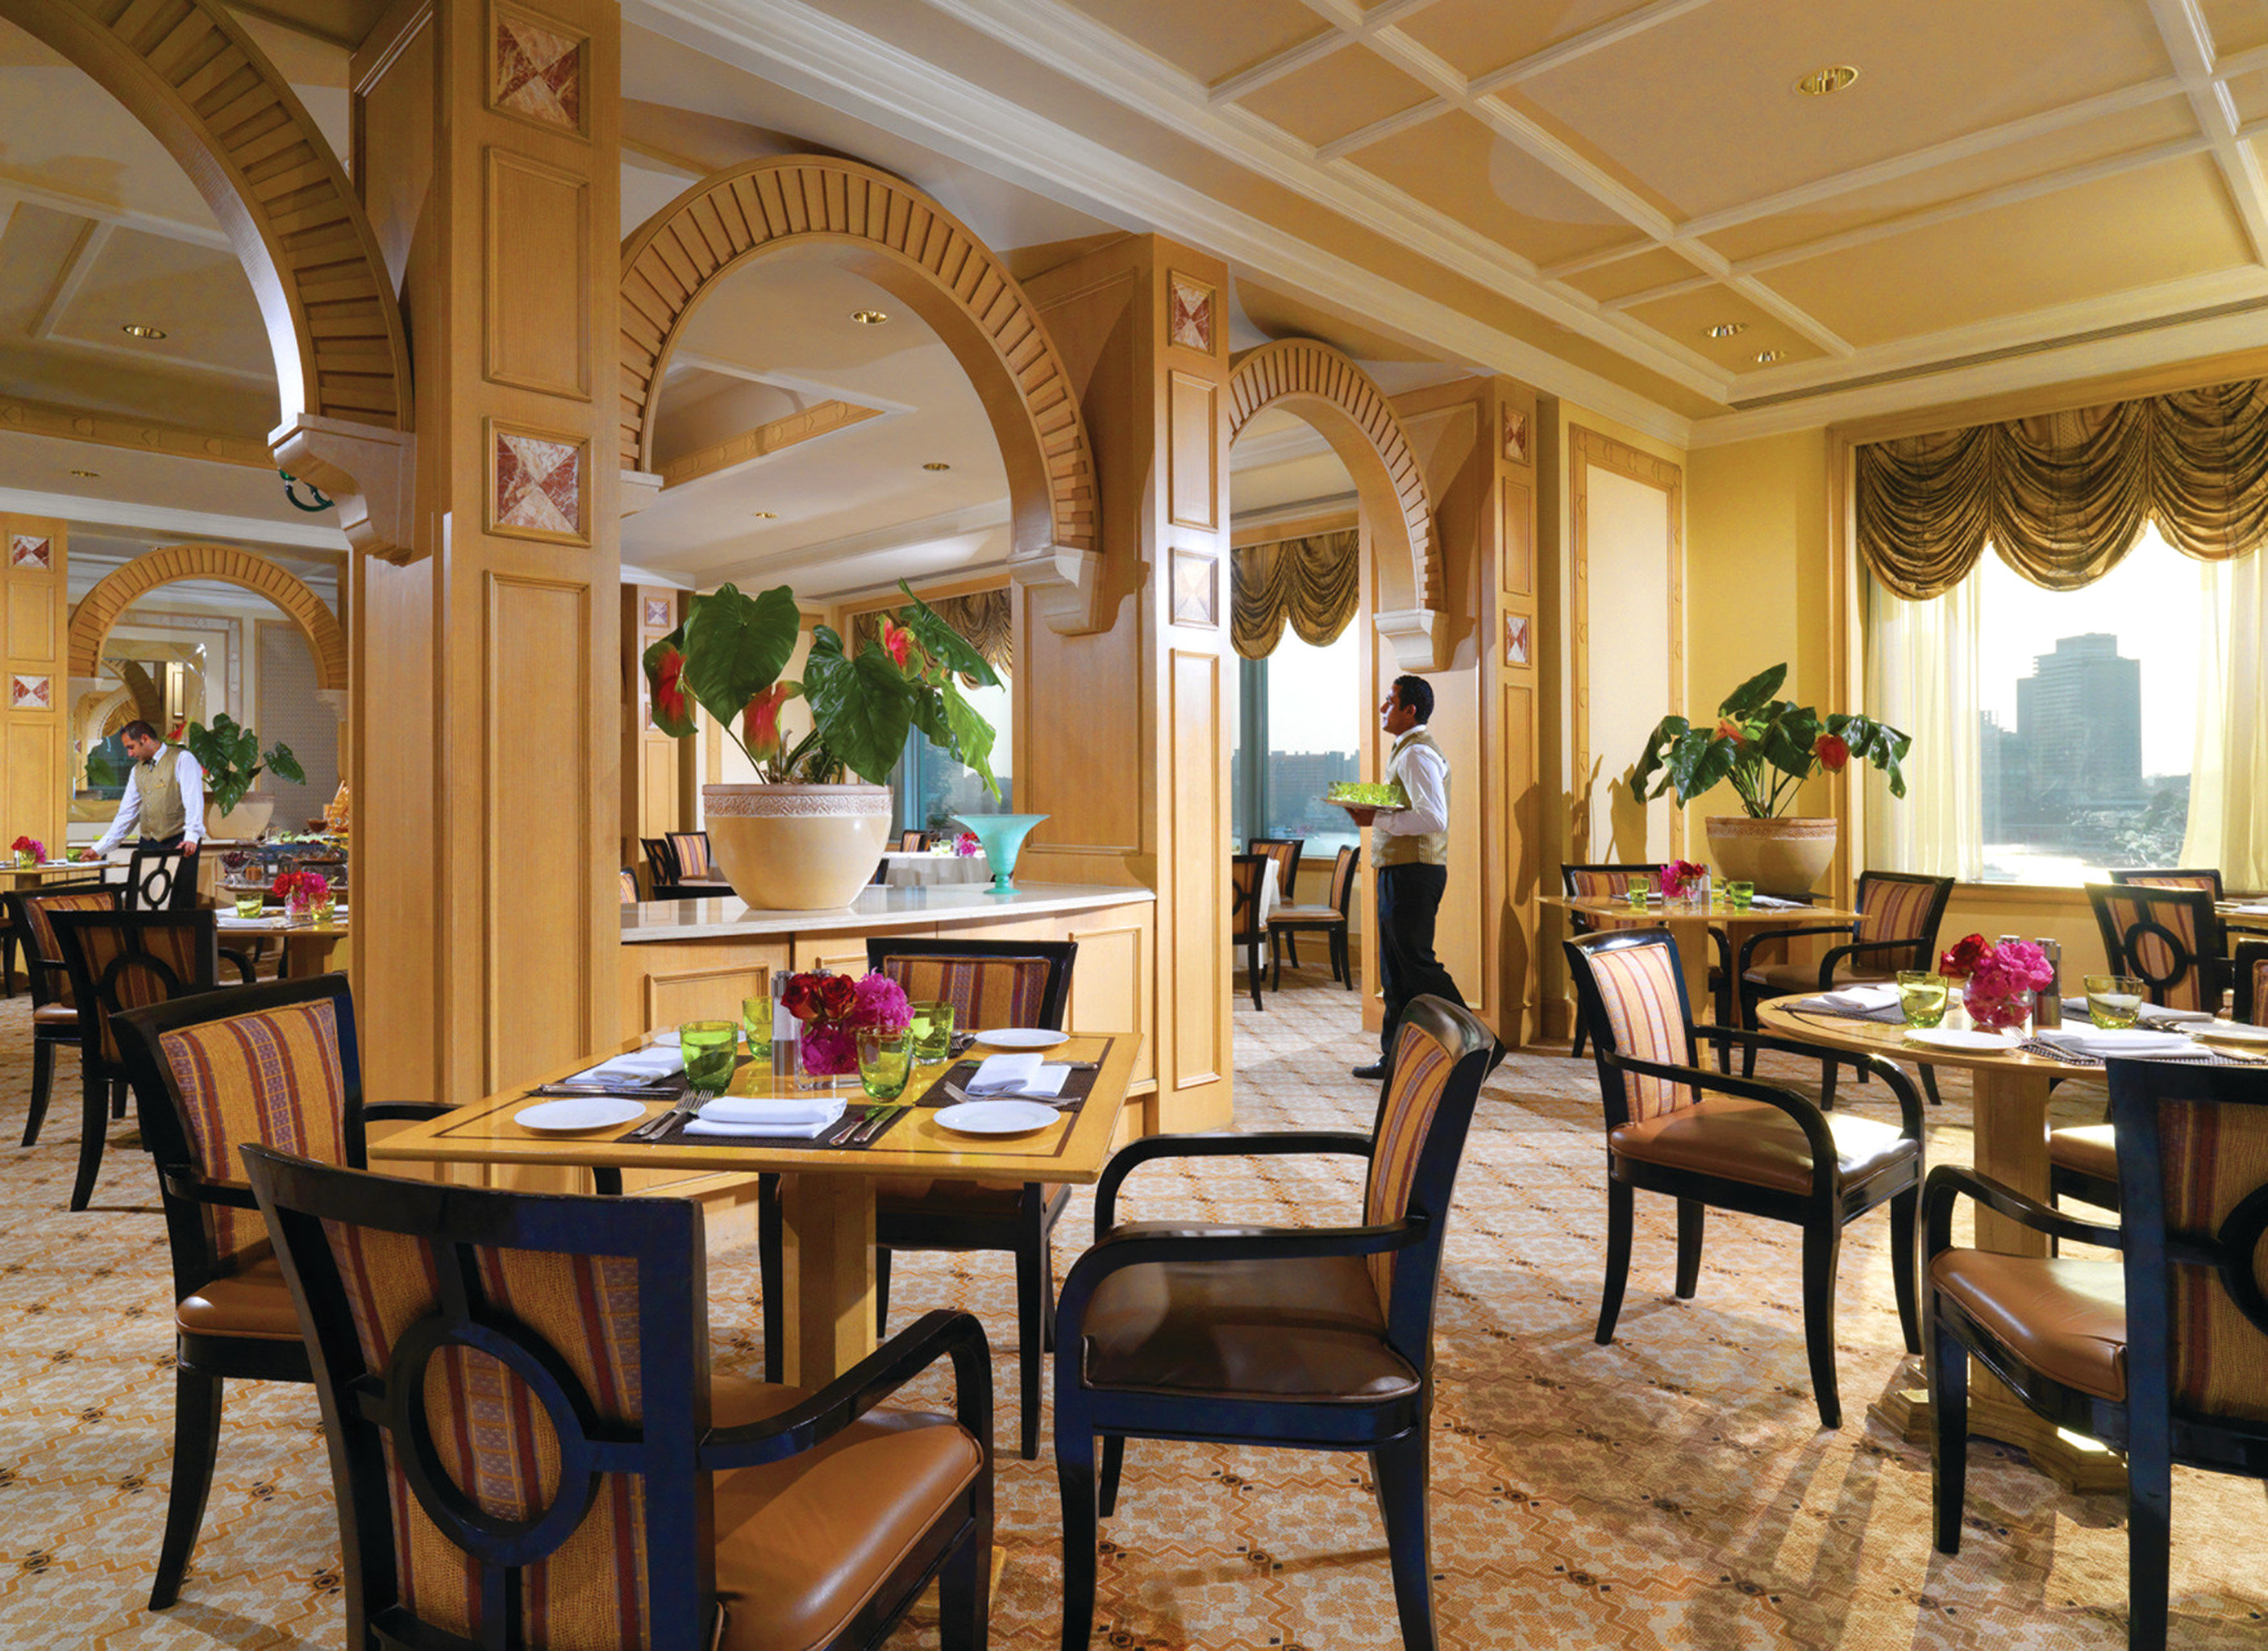 Dining Drink Eat Modern Scenic views chair property Resort restaurant home function hall palace Villa mansion